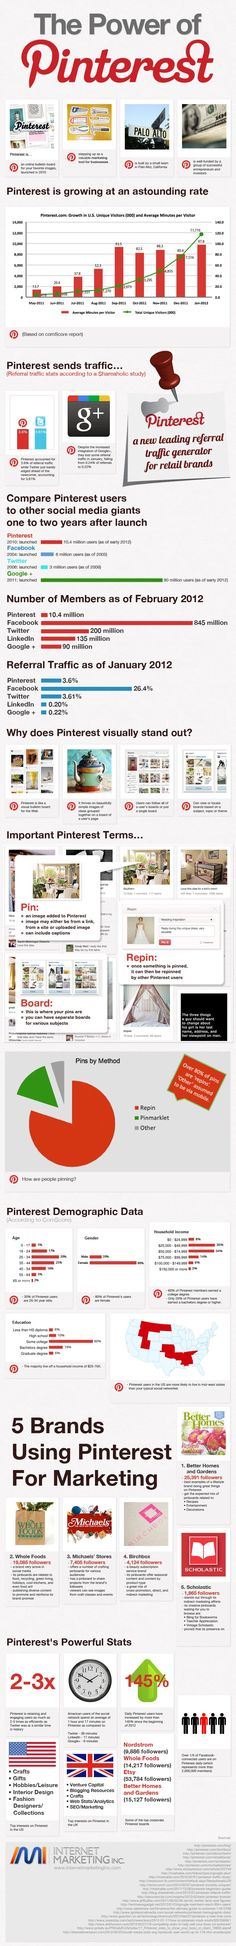 The power of #Pinterest #infographic